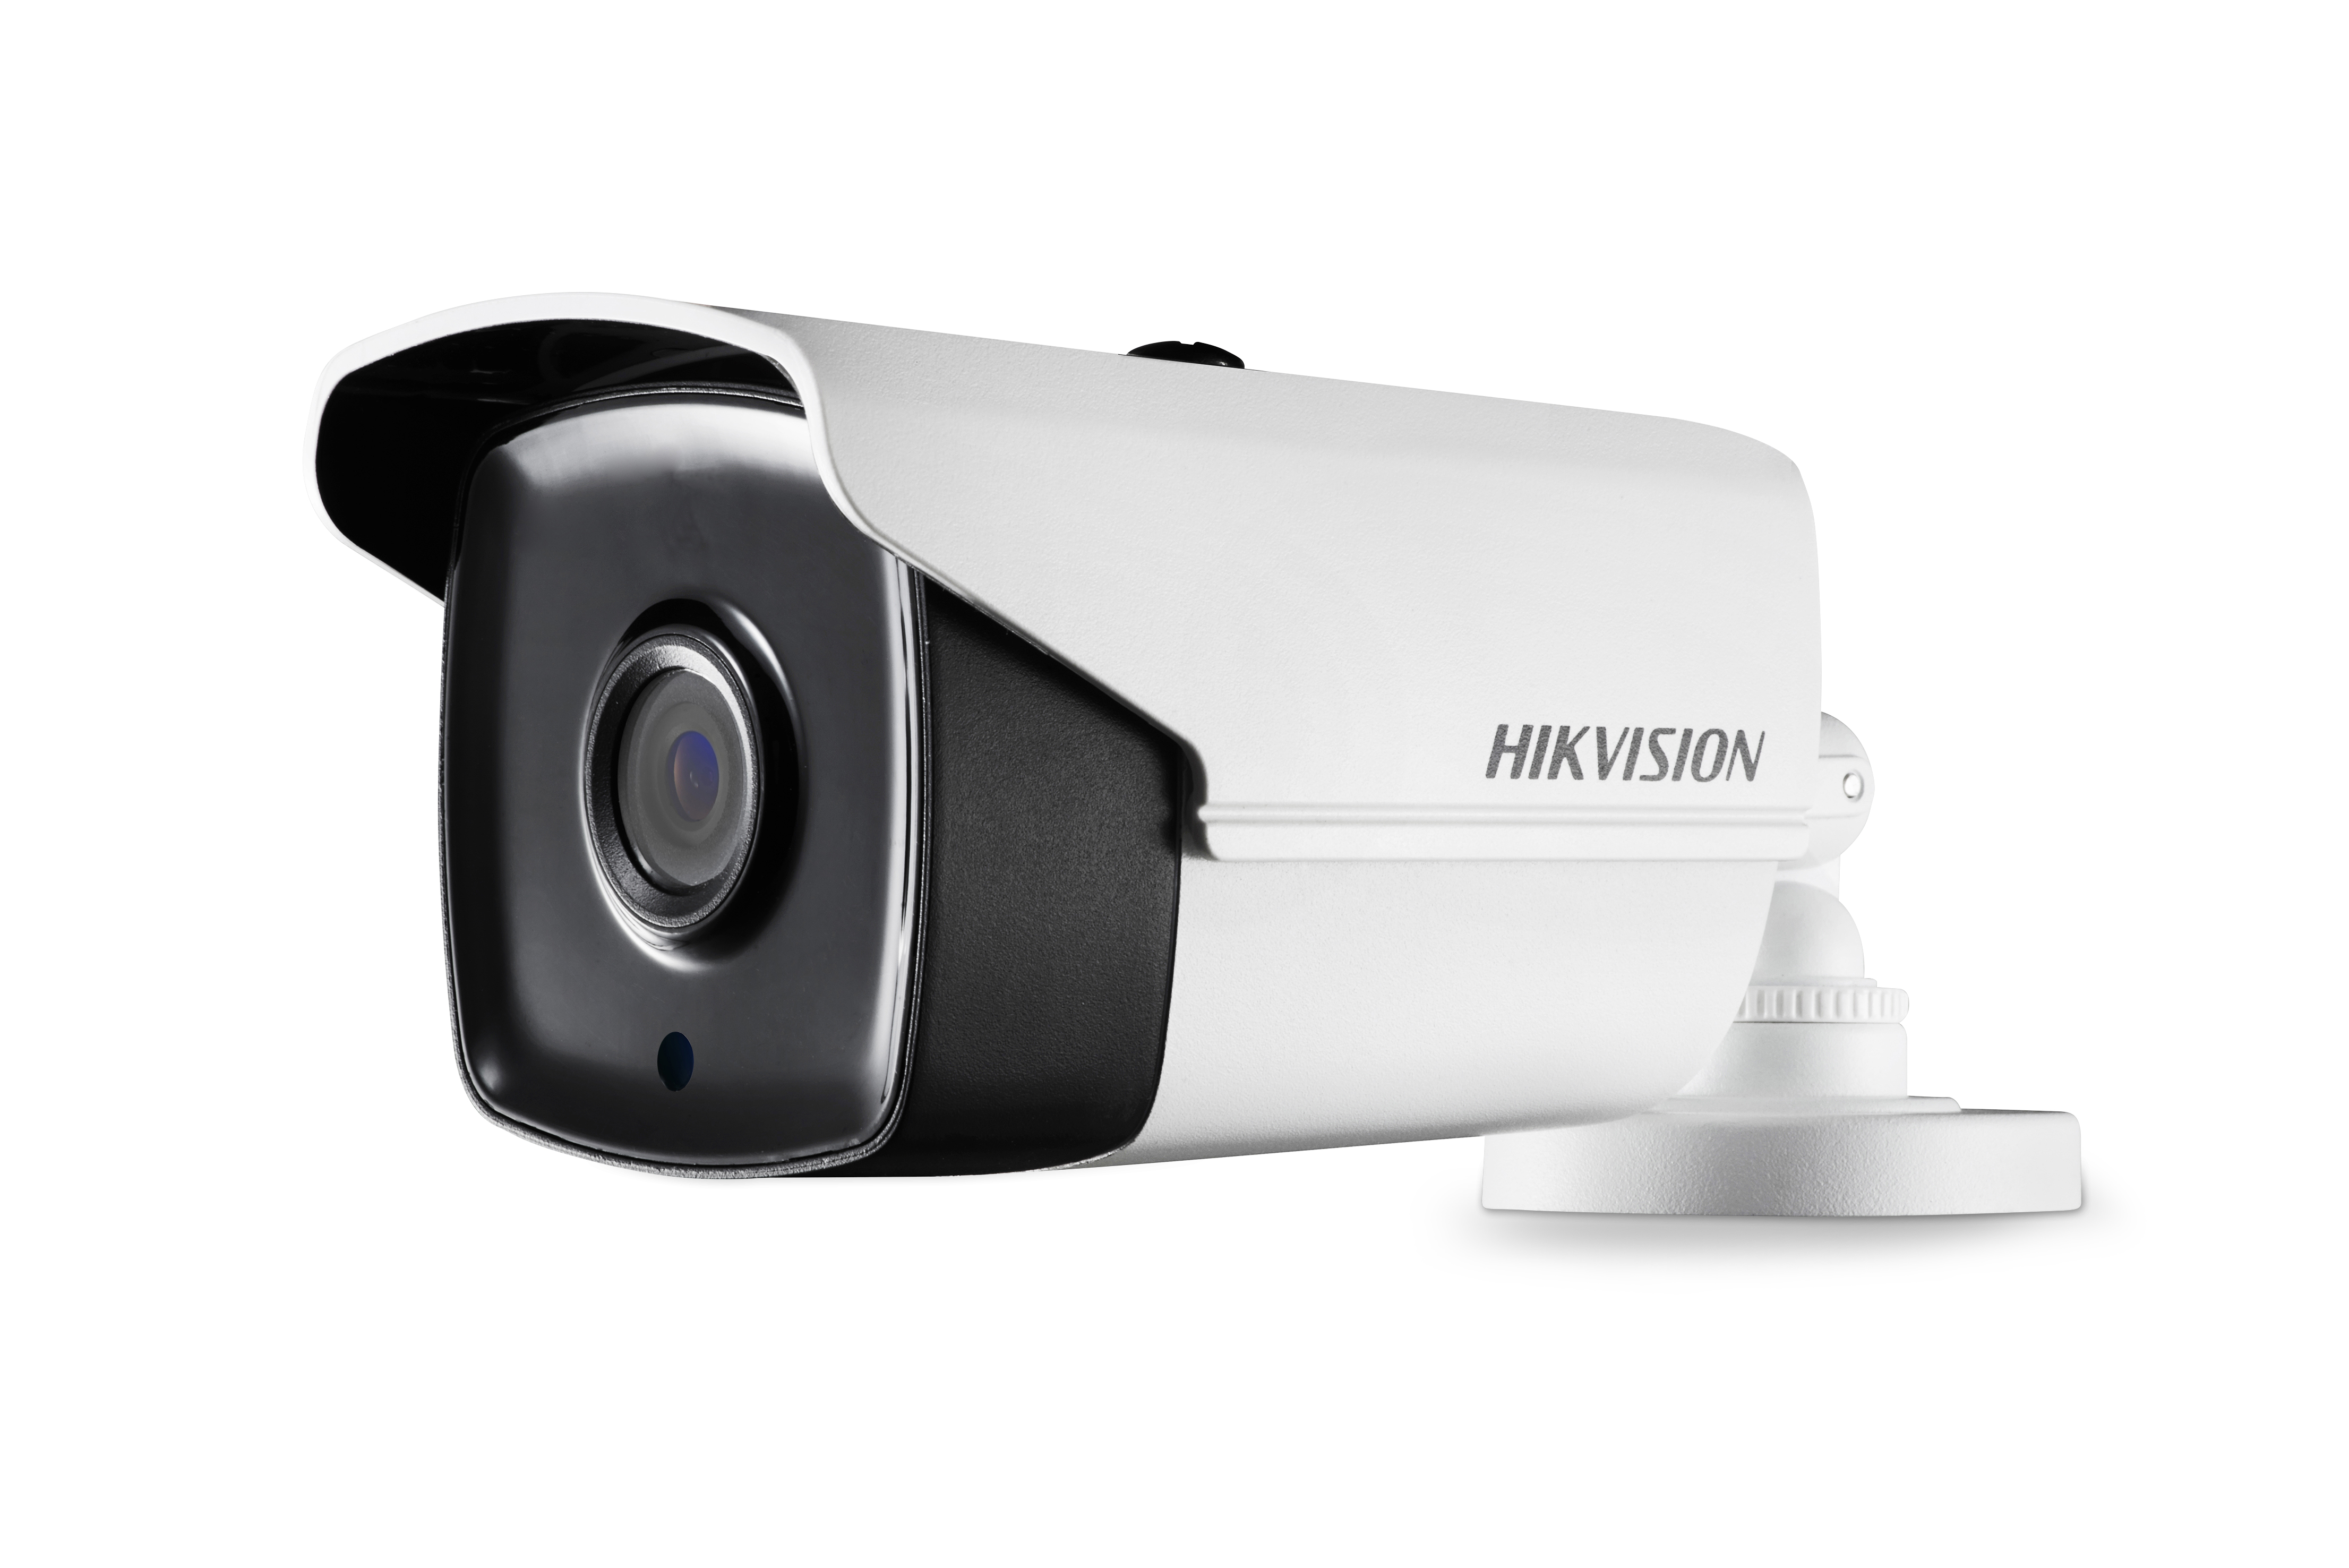 Hikvision DS-2CE16C0T-IT1 3.6mm